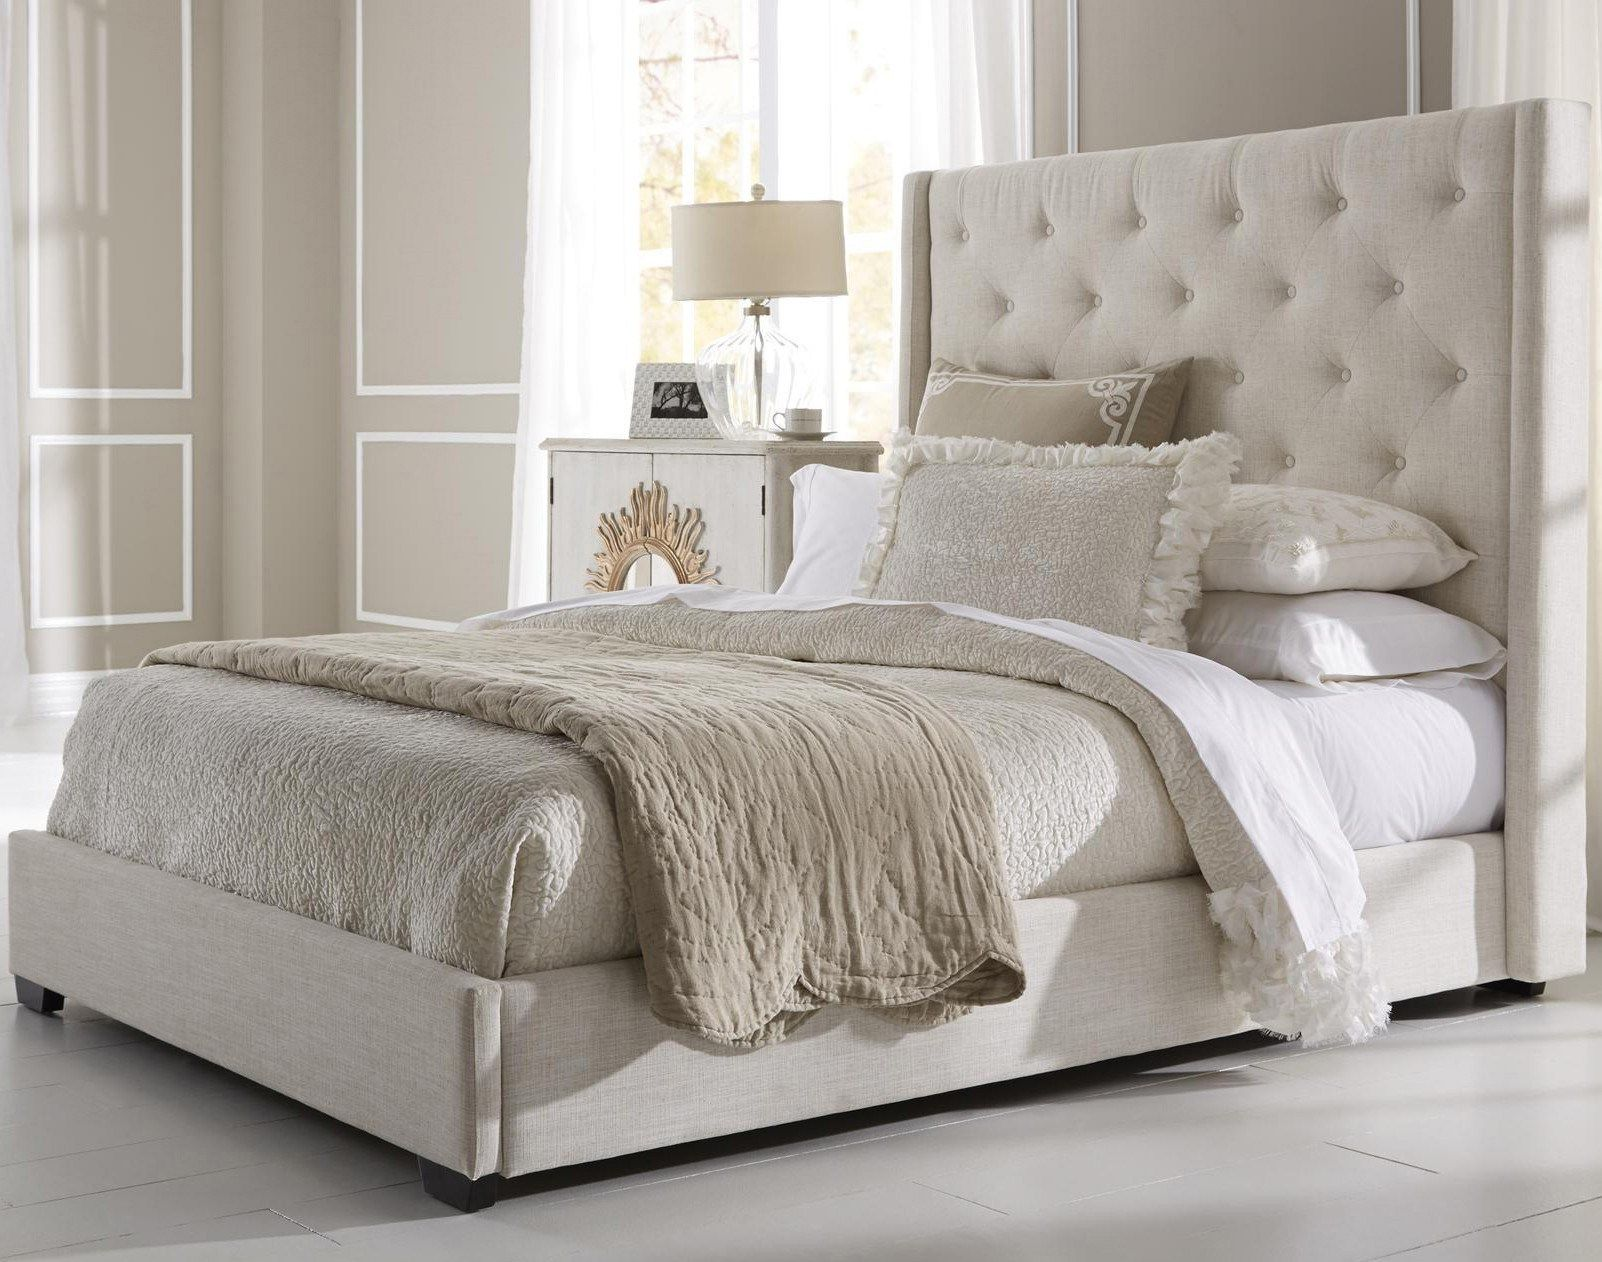 Fabric Headboard Bedroom Sets. ivory leather cover platform with